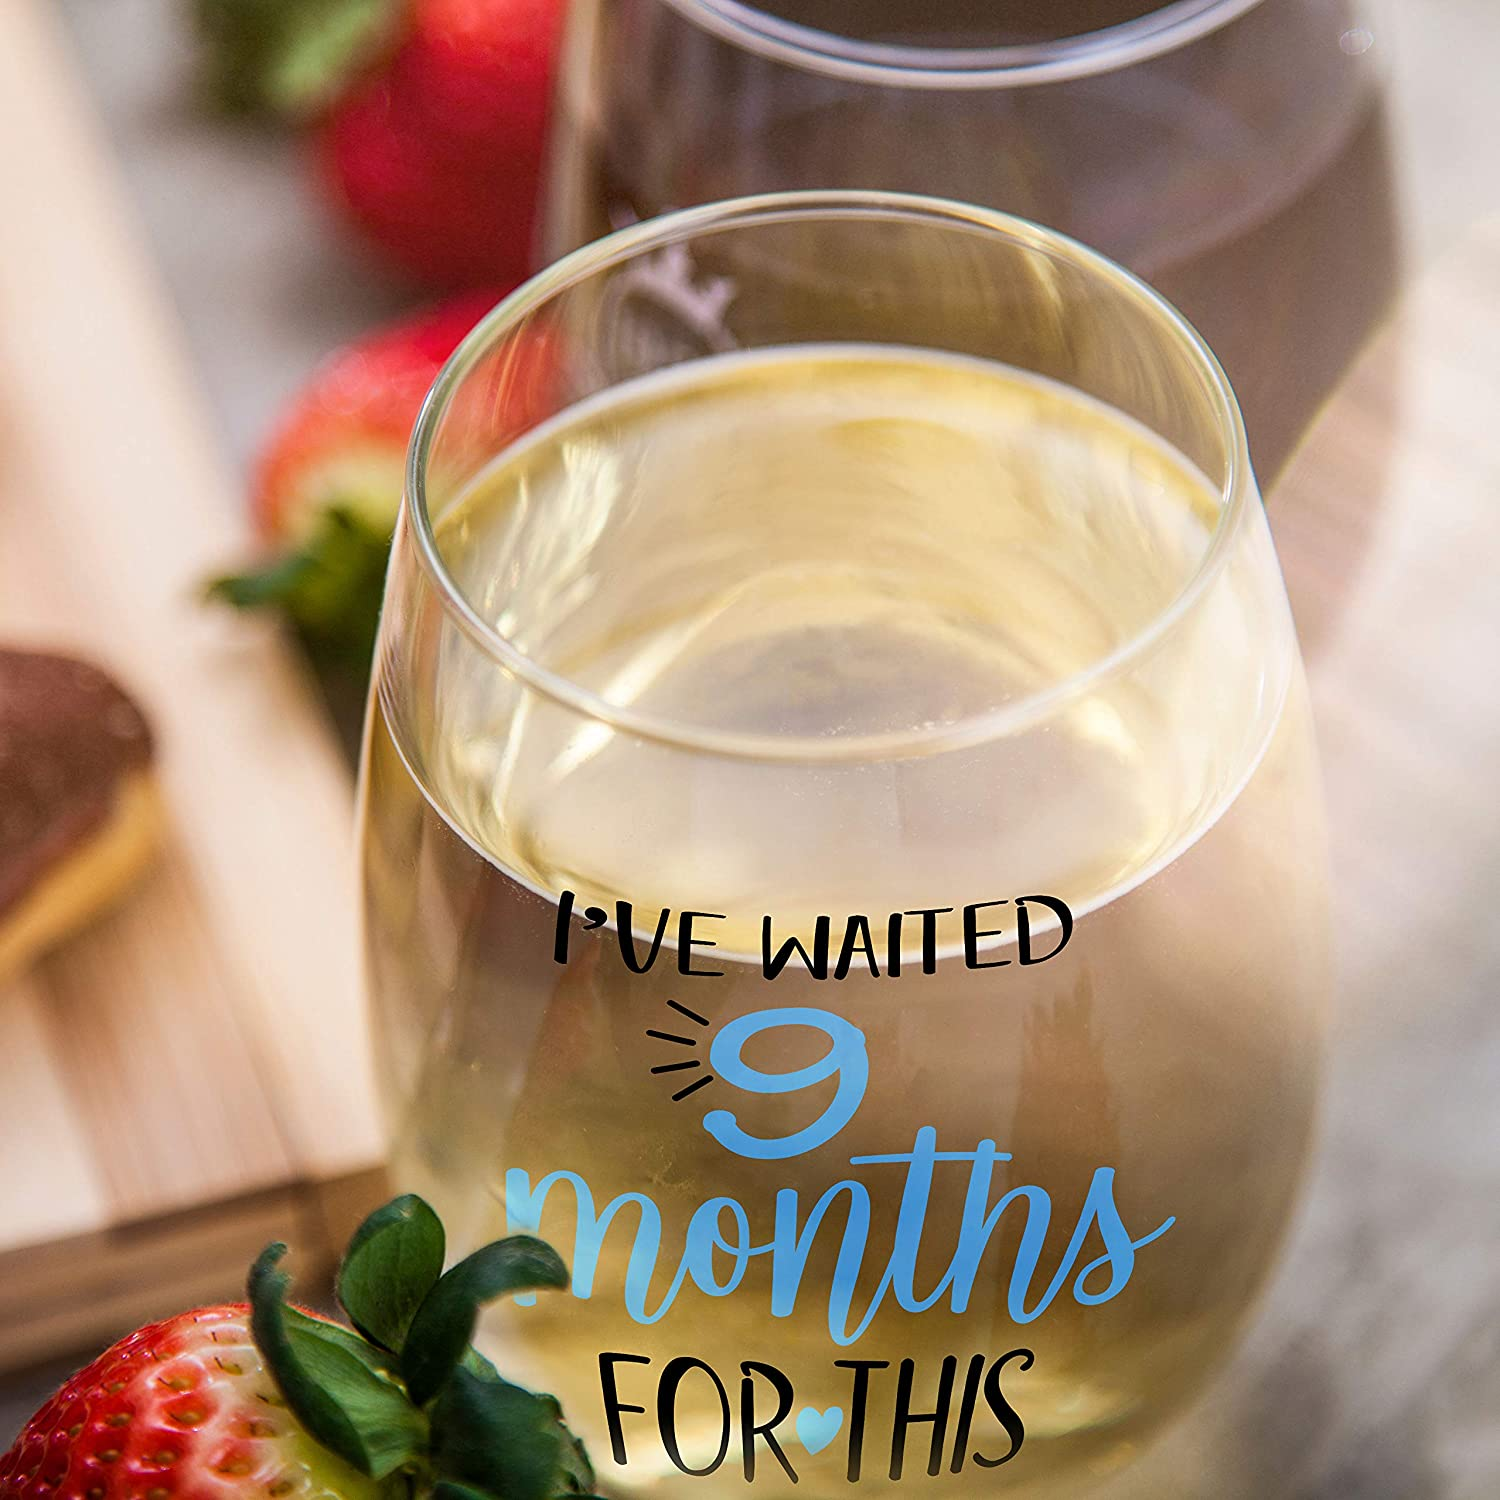 Expectant Mothers Ive Waited 9 Months for This Mothers Day Wine Glass 15oz Birthday Newborns Blue | Funny Personalized Novelty Stemless Glass Gifts for Expecting Boy Mom Pregnant Women